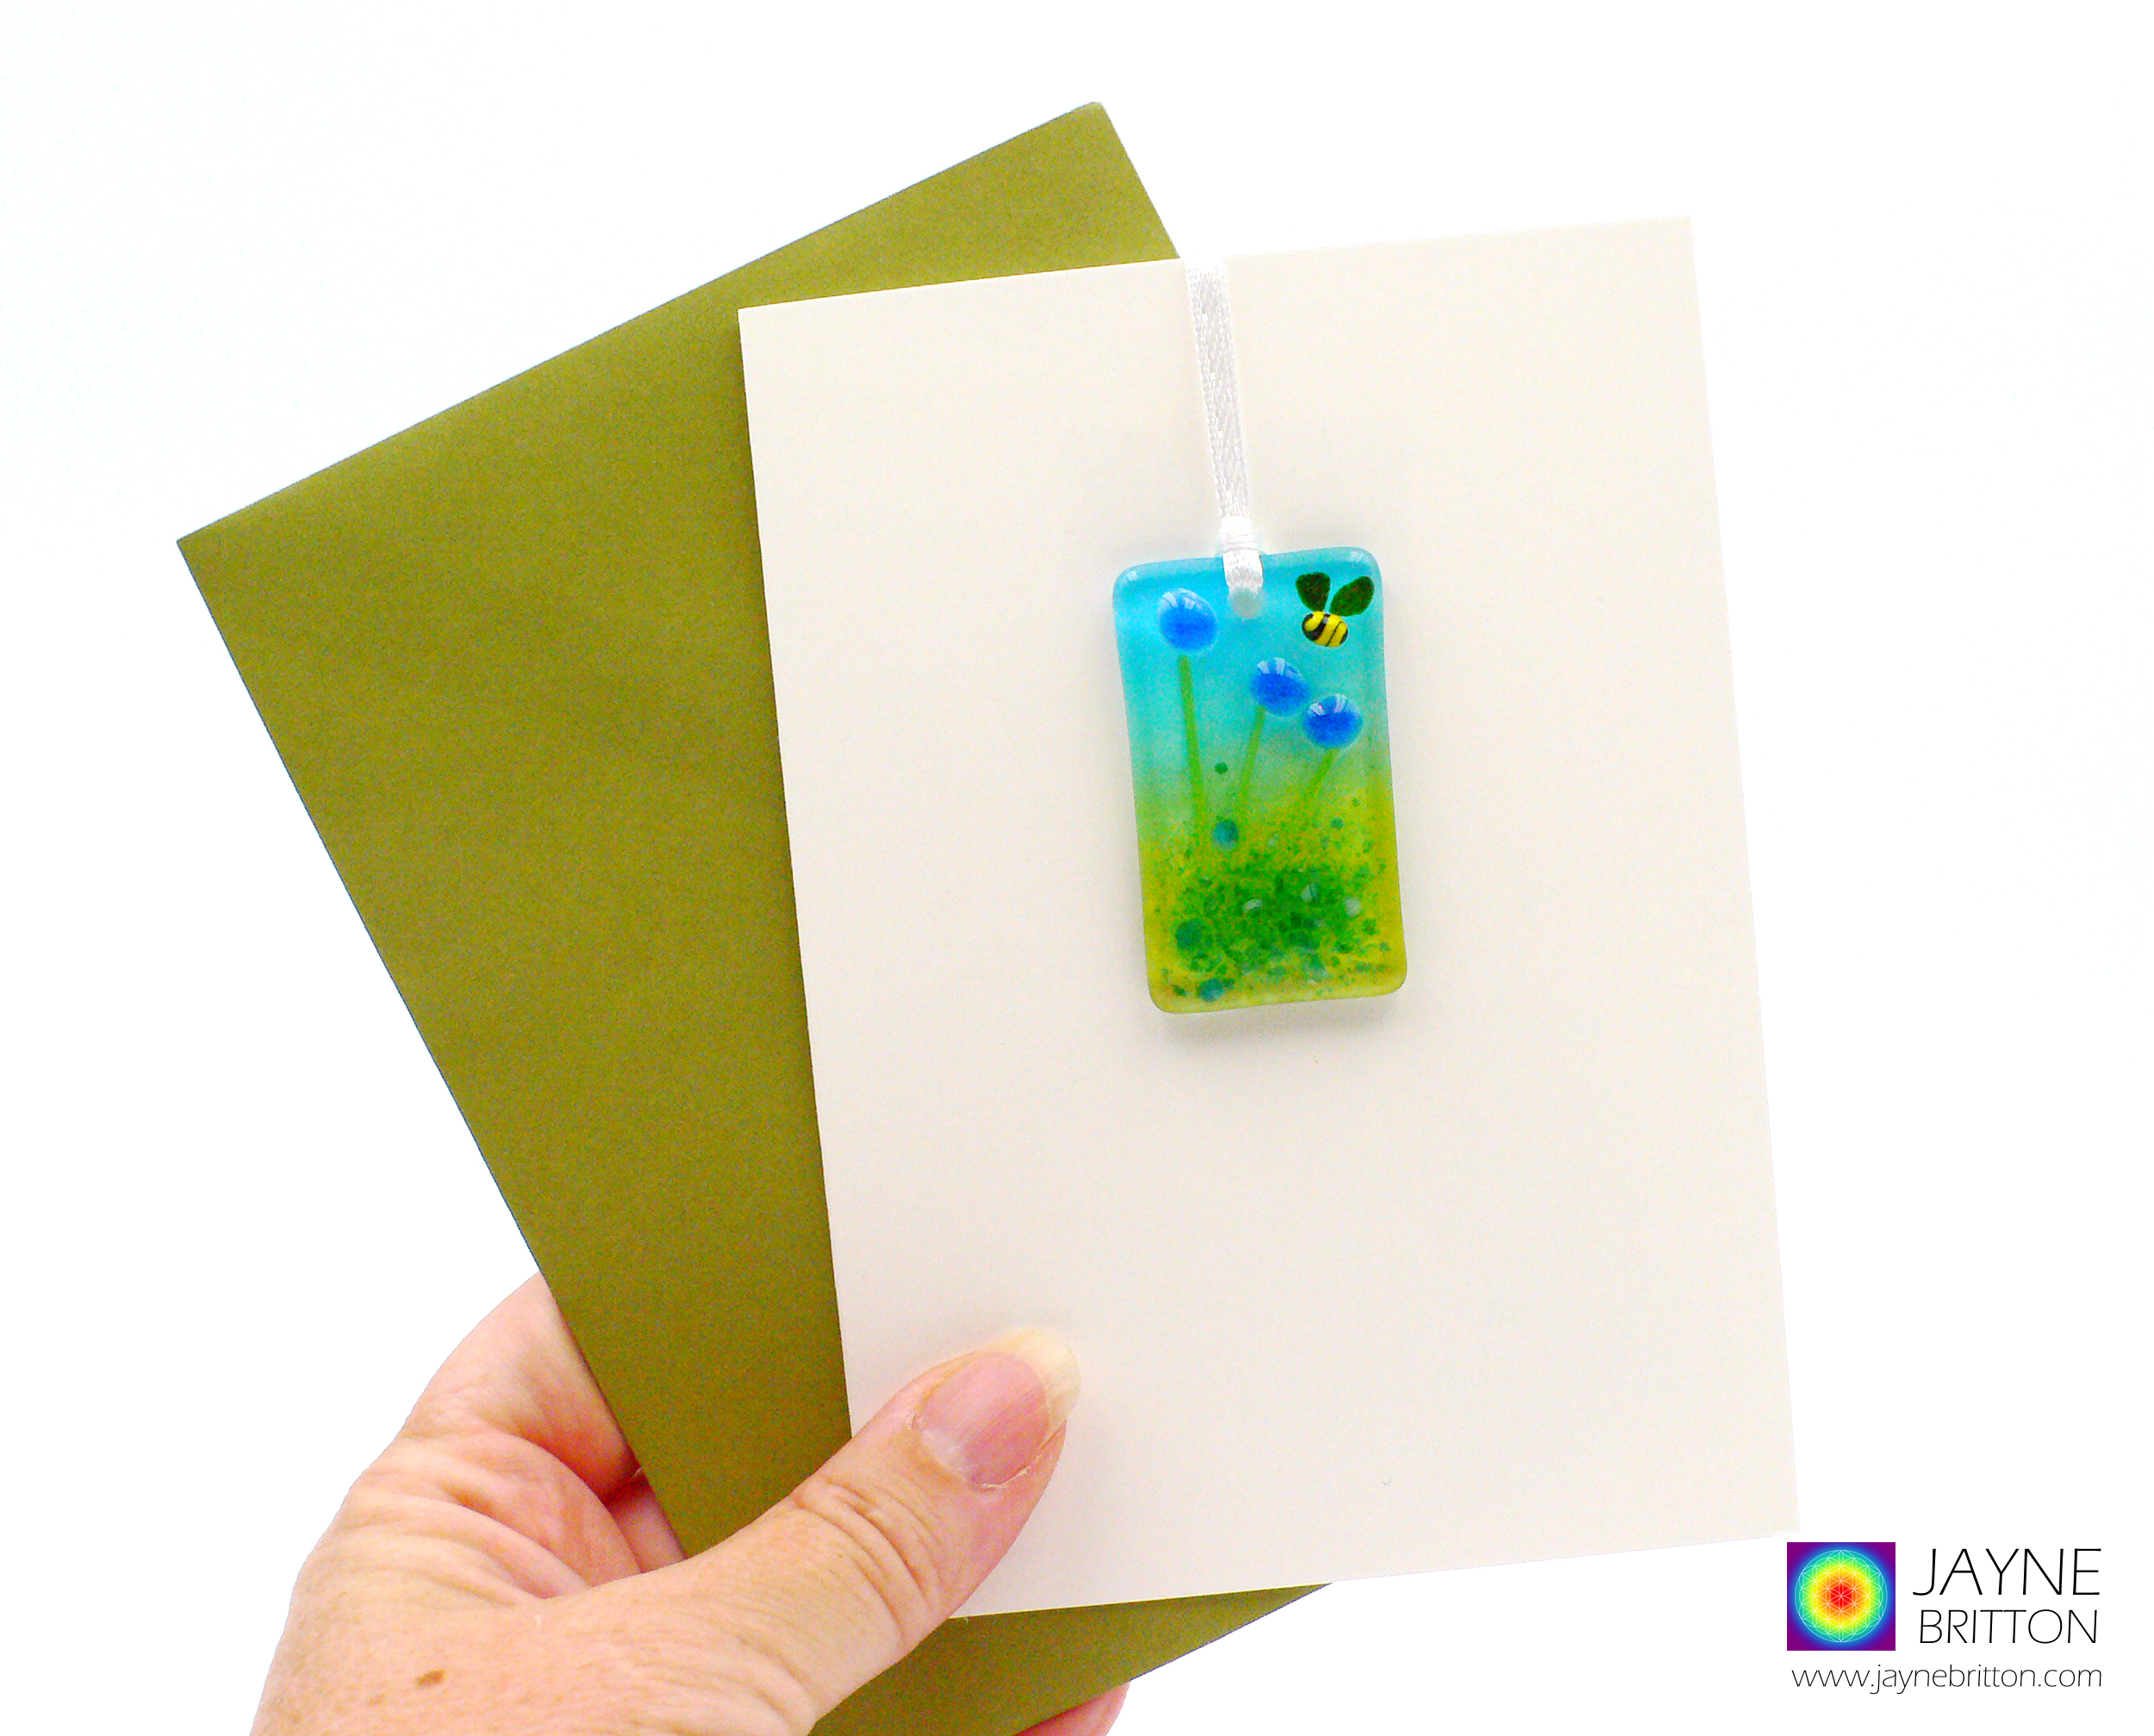 Greeting card with gift - fused glass blue flowers light catcher